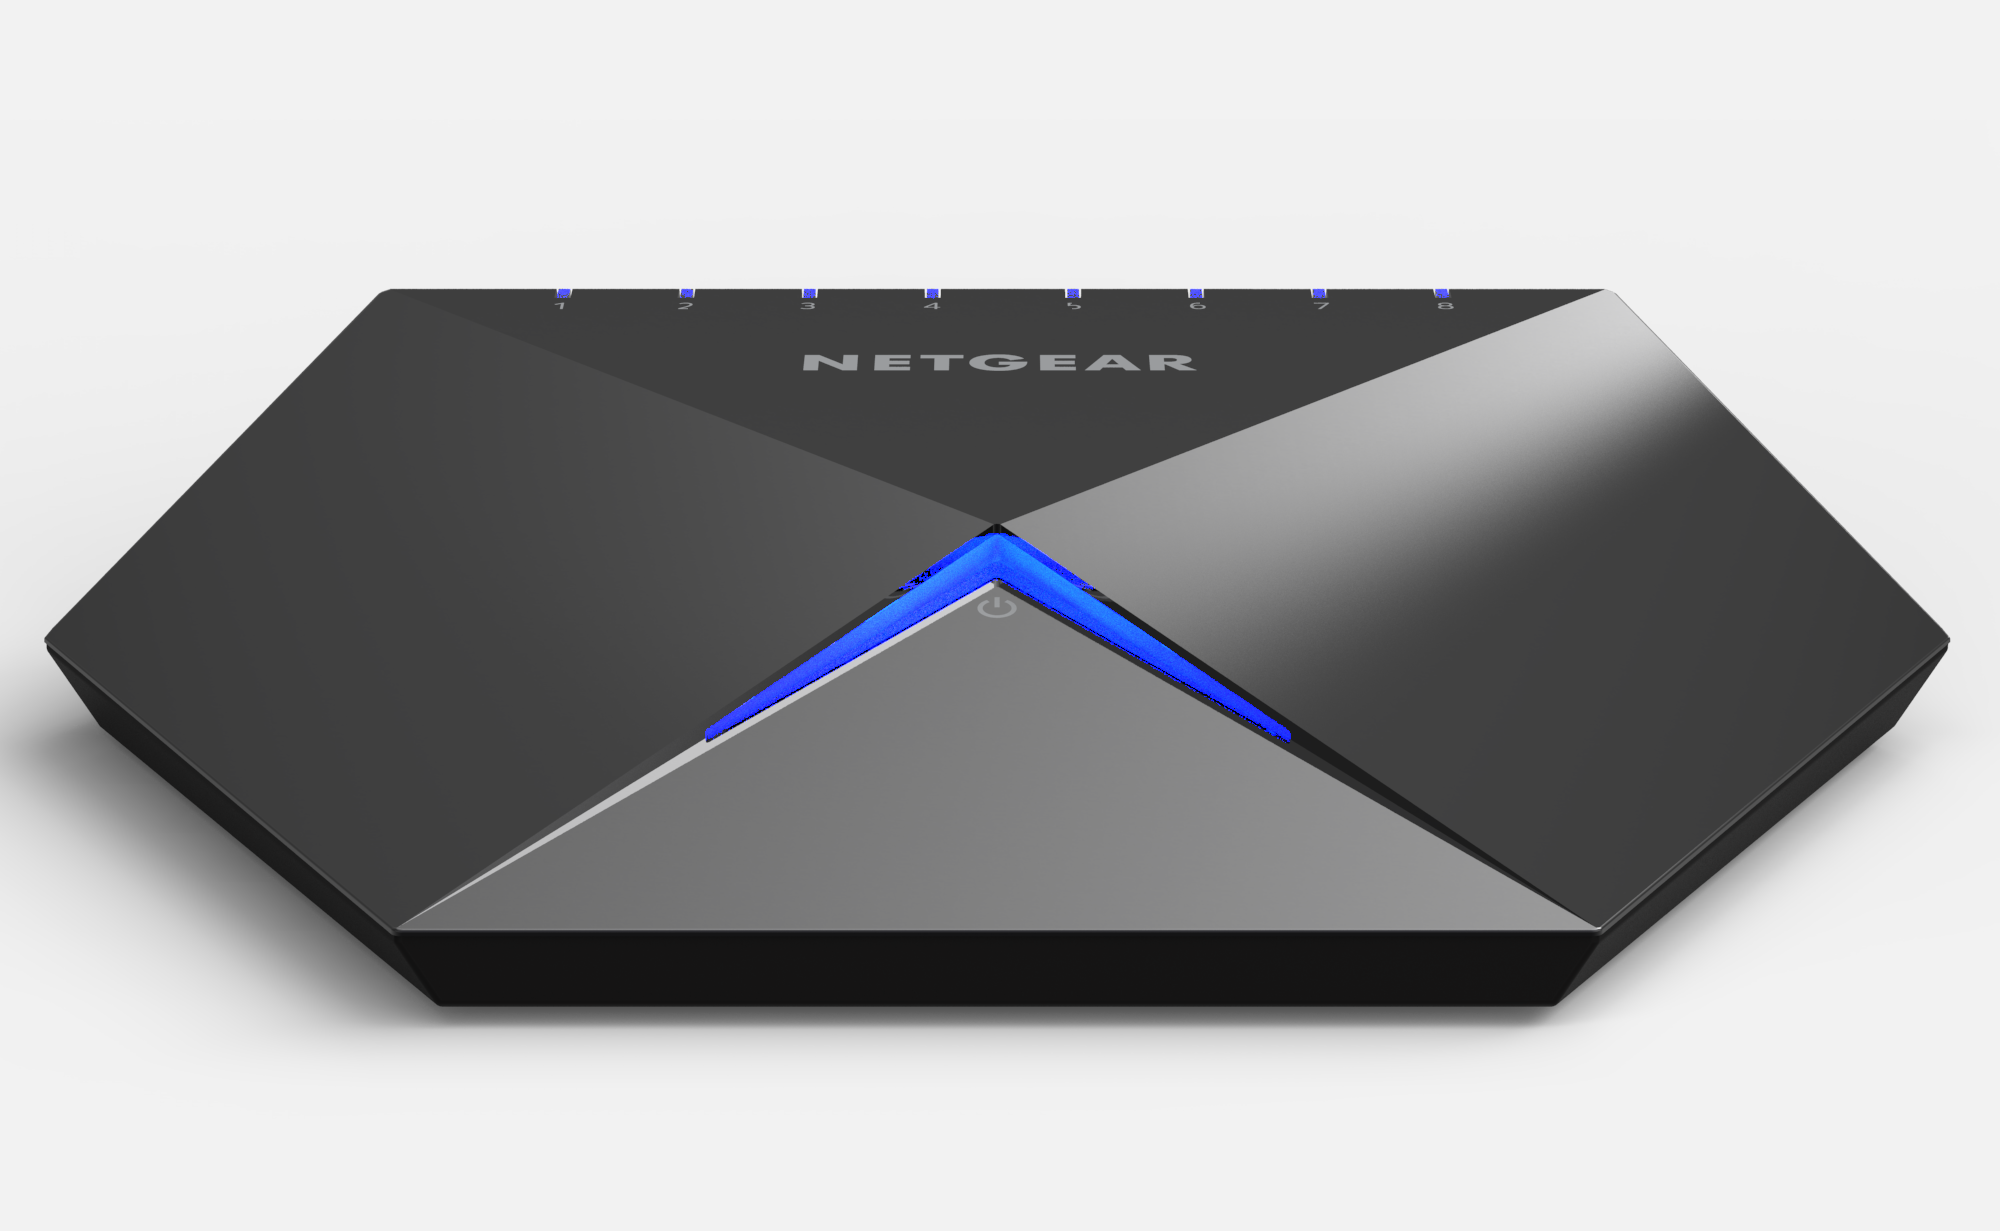 NETGEAR Nighthawk S8000 Gaming And Media Switch press picture courtesy of NETGEAR